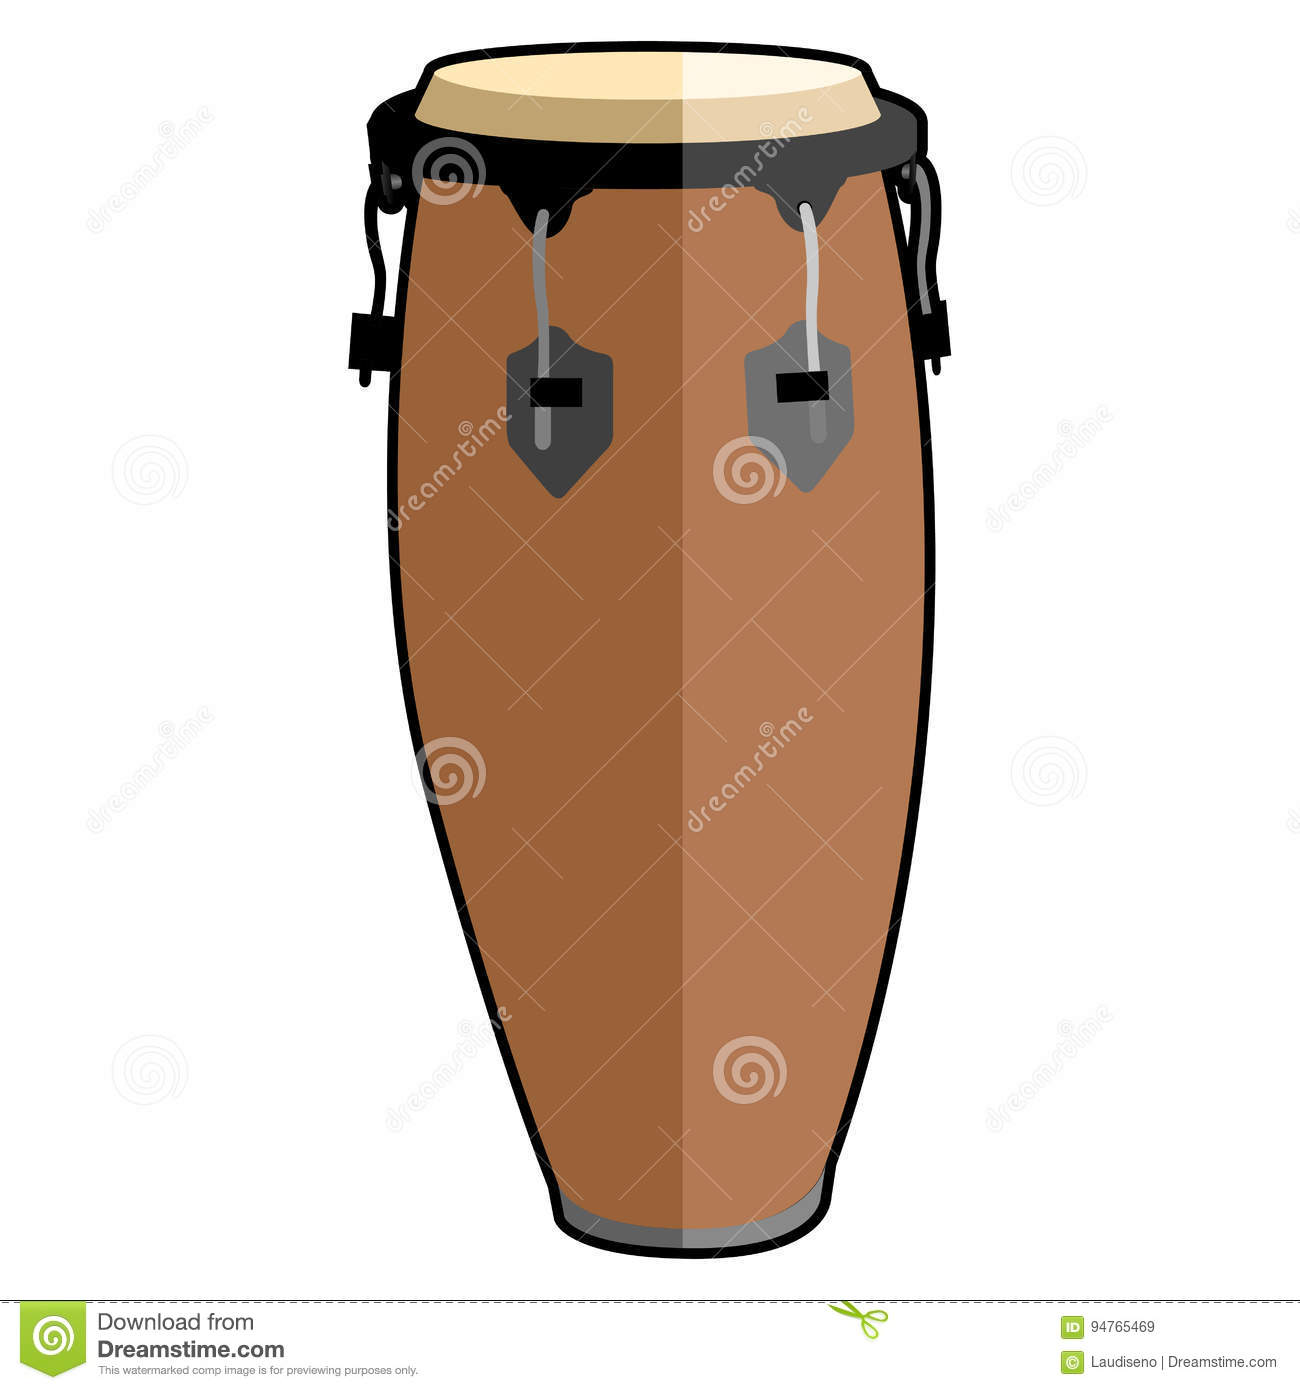 Isolated Conga Drum Icon Of A Vector Illustration Royalty Free